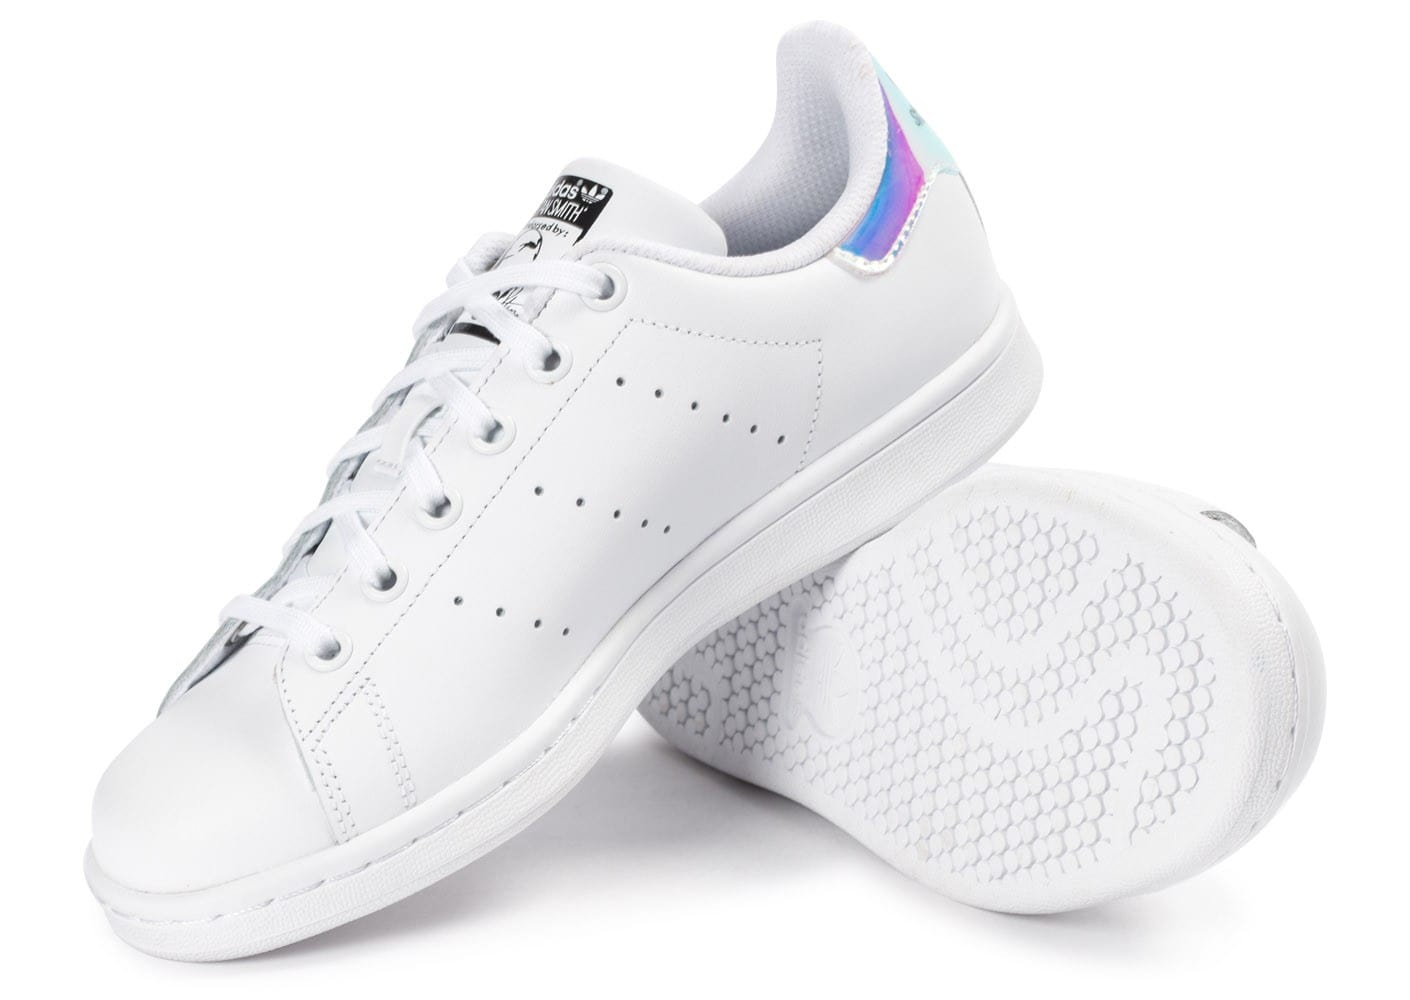 Blanche Chausport Adidas Iridescente Smith Chaussures Stan PZwXTiulOk